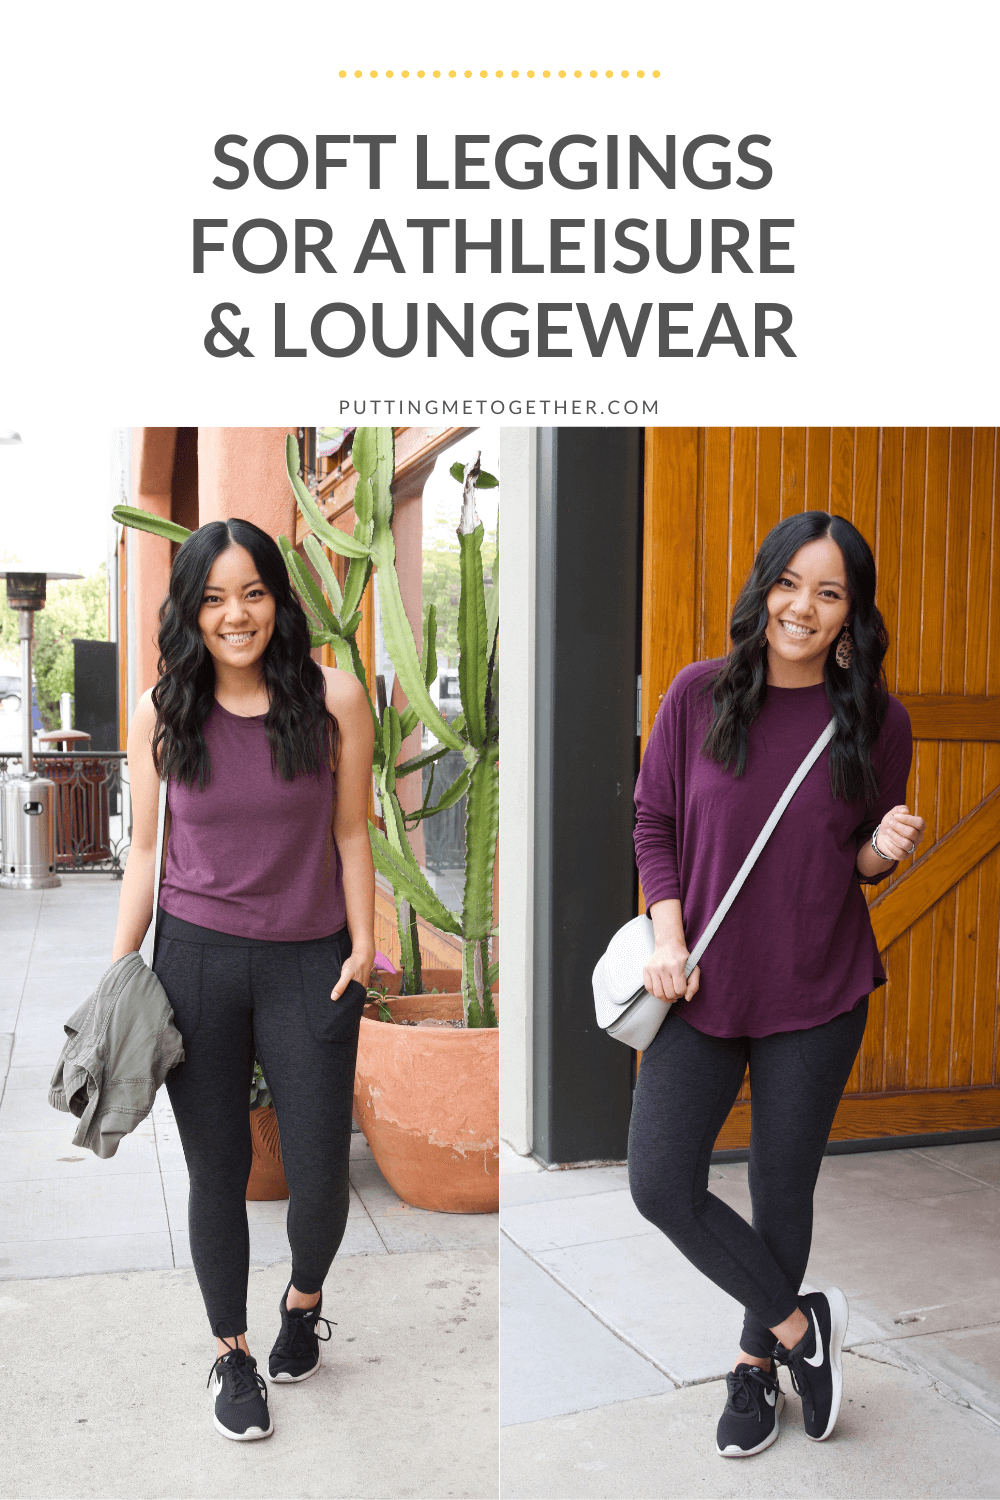 Soft Leggings for Athleisure and Loungewear